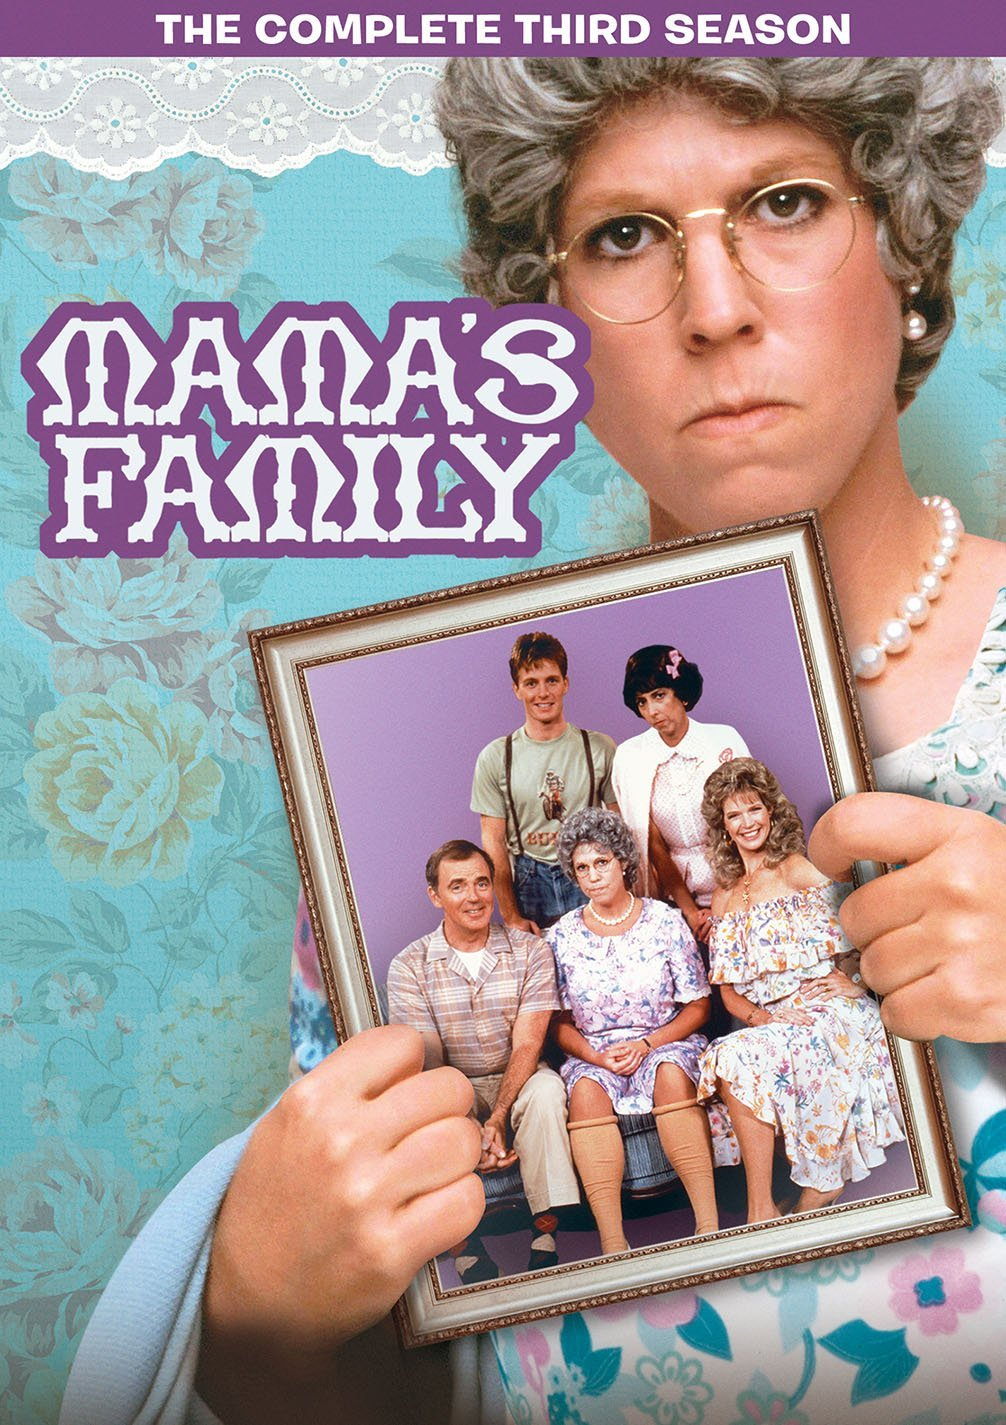 The Ten Best MAMA'S FAMILY Episodes of Season Three | THAT'S